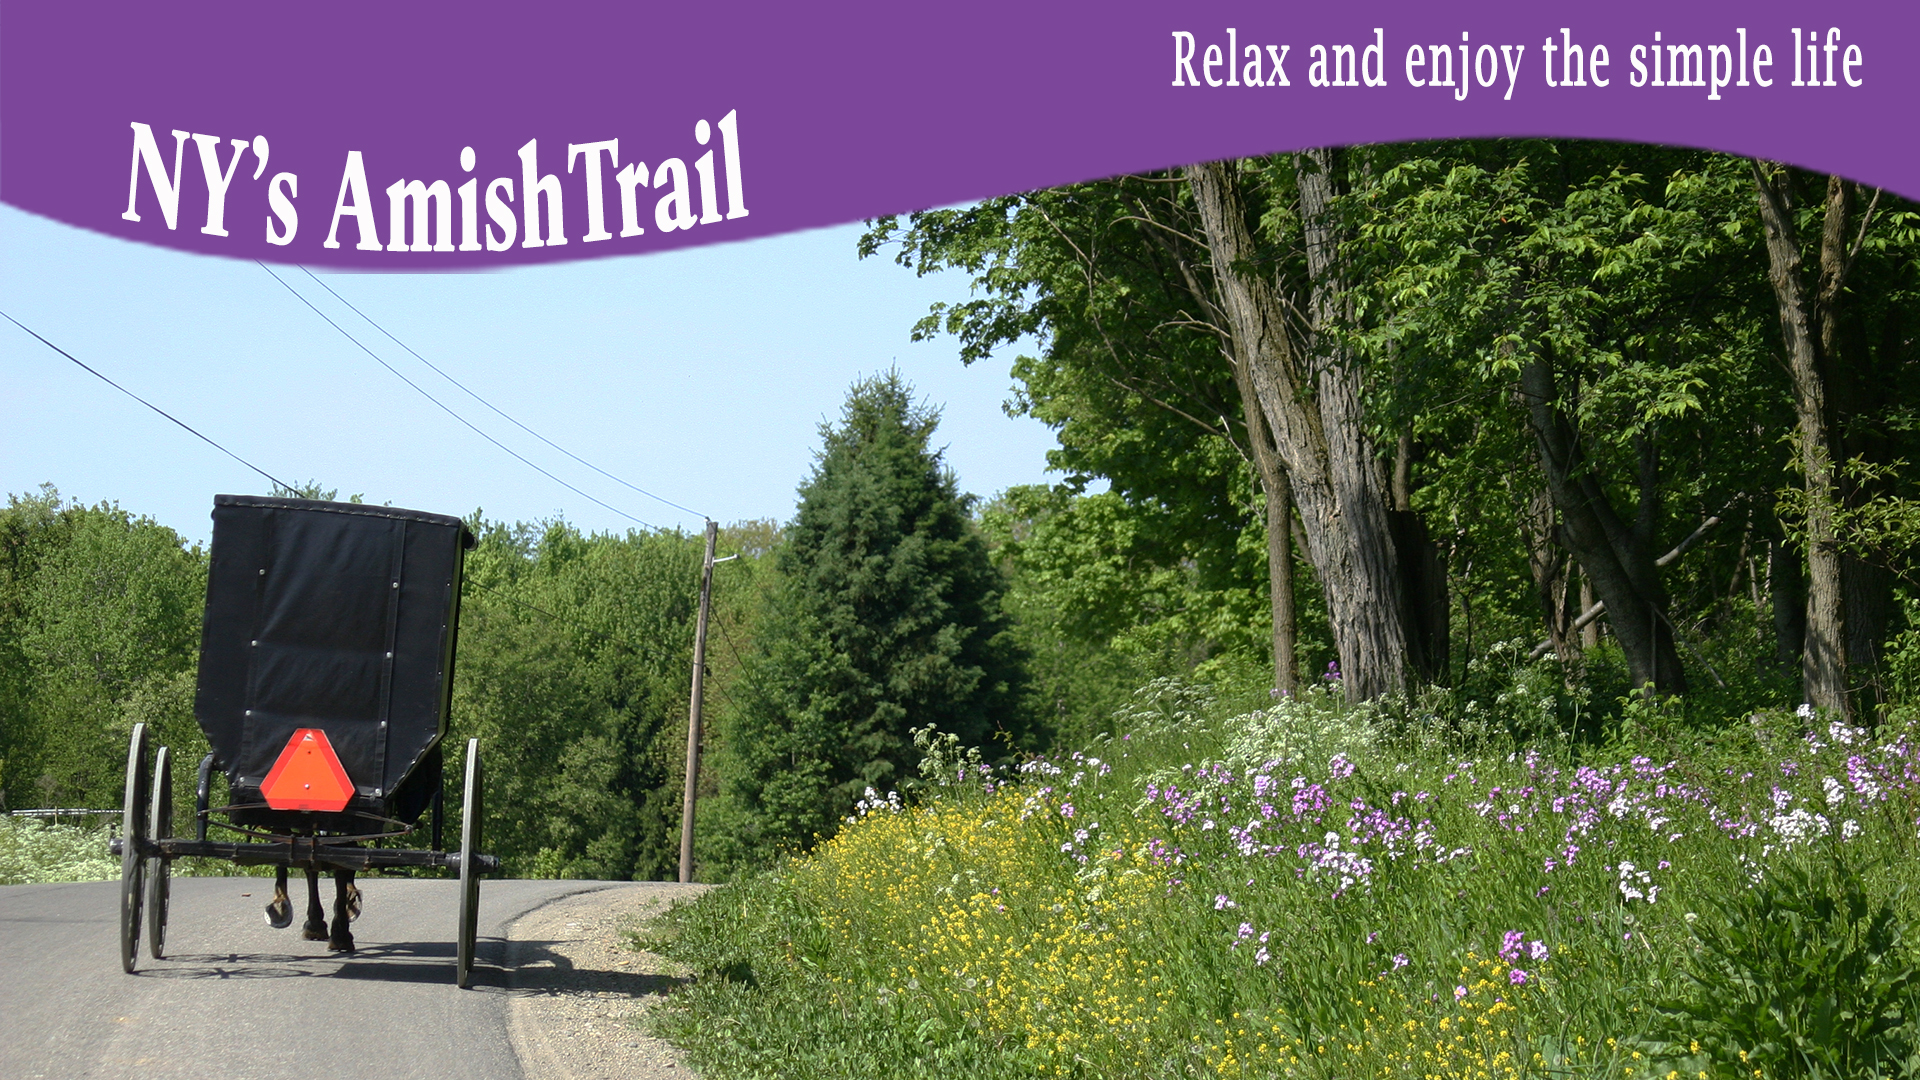 Explore the Amish Trail in Spring!